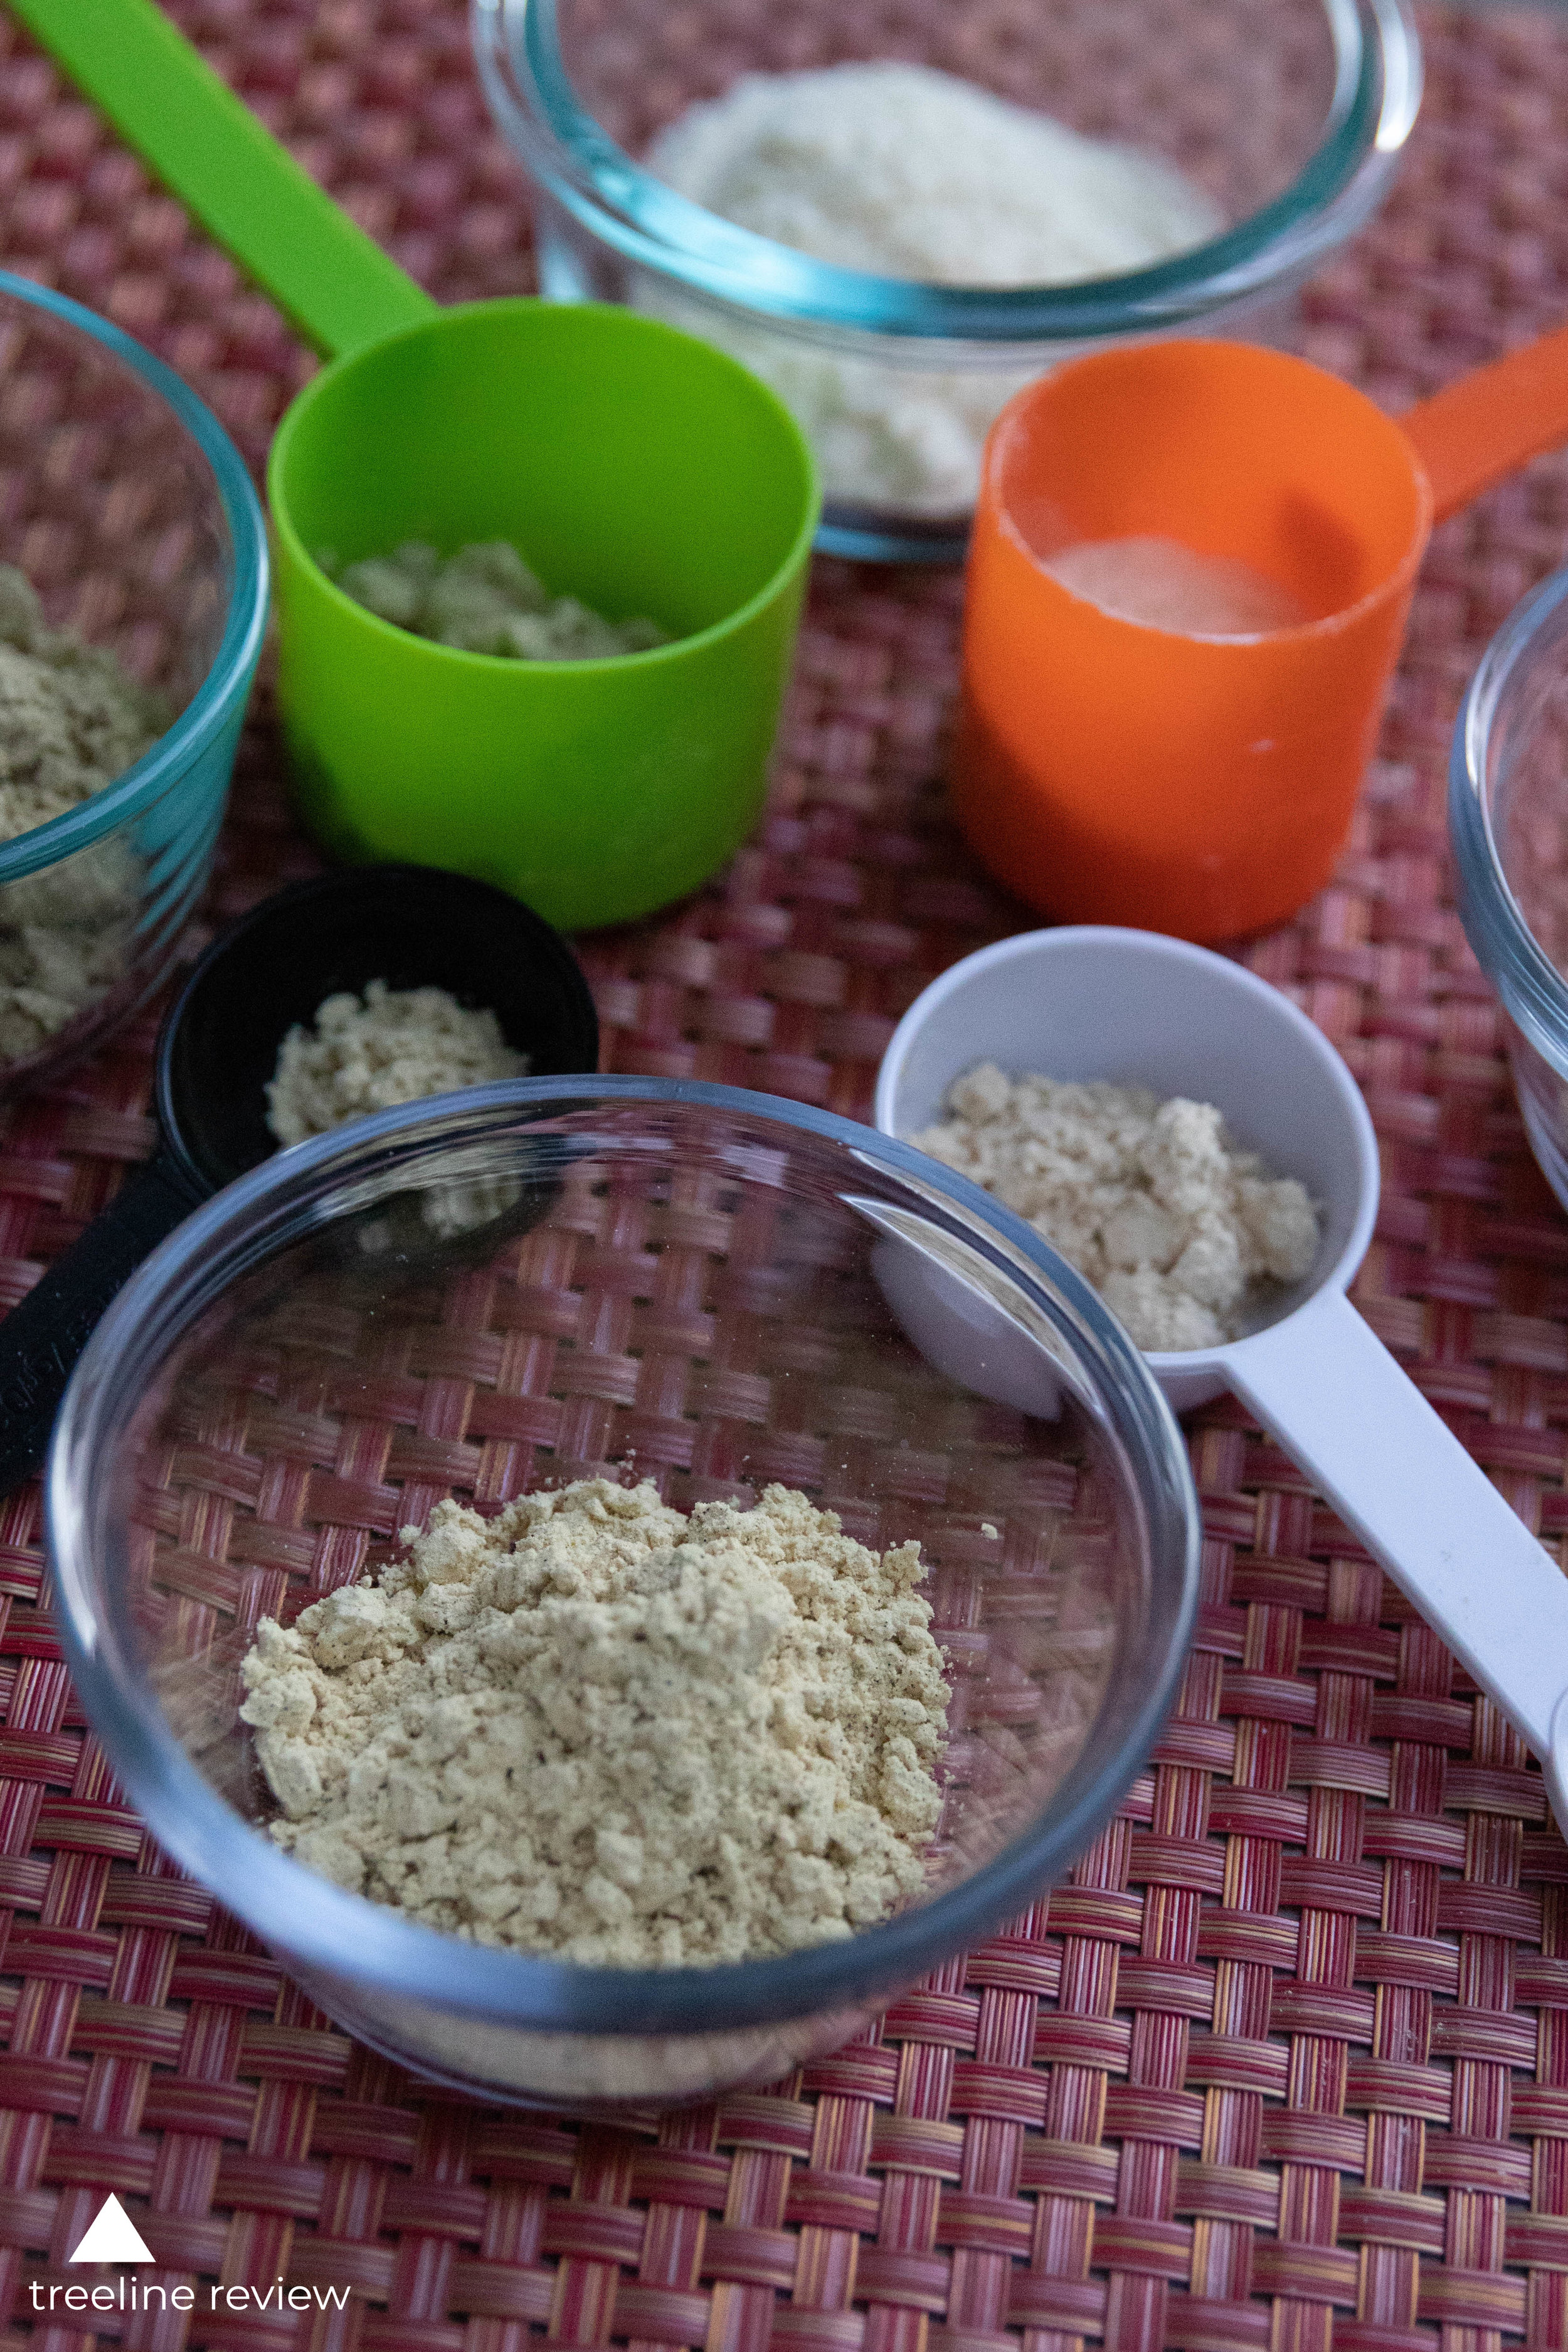 What to know about contamination in protein powder -